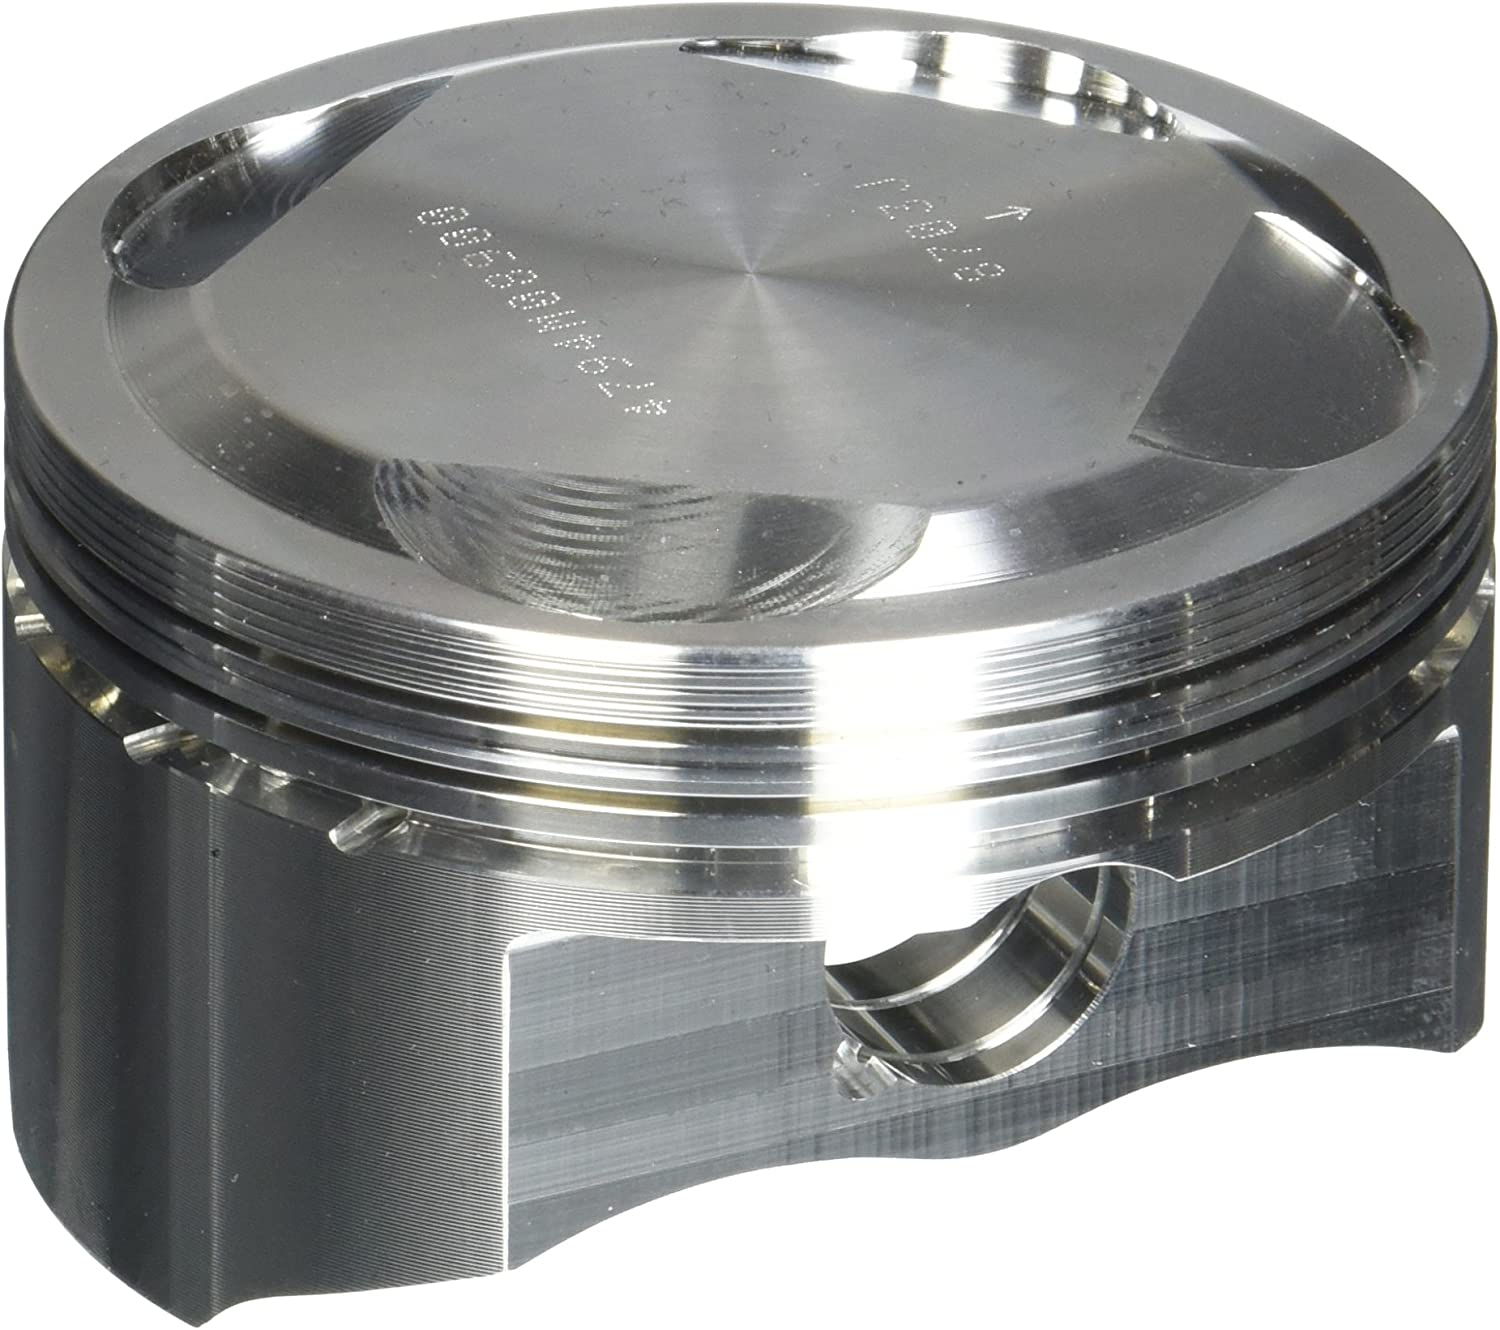 Wiseco 4794M08900 89.00mm 12.5:1 Compression 435cc Piston Kit